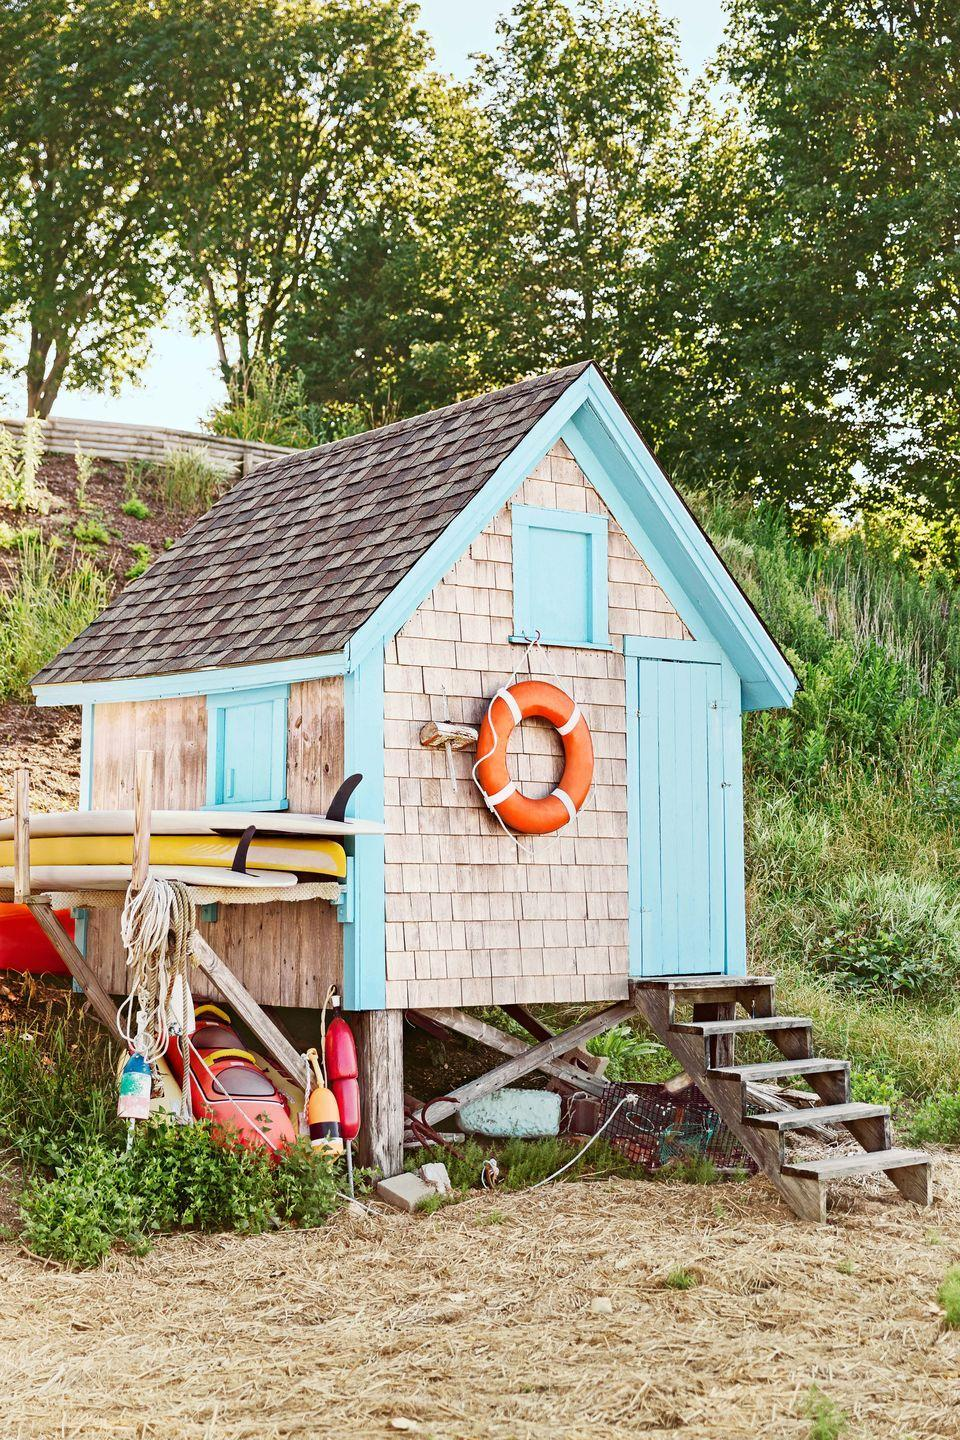 """<p>This New England shack makes us want to kick off our sandals and head straight for the shore. A colorful exterior is contrasted beautifully by faded Cape Cod shingles.</p><p><a class=""""link rapid-noclick-resp"""" href=""""https://www.amazon.com/Tiny-House-Live-Small-Dream/dp/0525576614?tag=syn-yahoo-20&ascsubtag=%5Bartid%7C10050.g.1887%5Bsrc%7Cyahoo-us"""" rel=""""nofollow noopener"""" target=""""_blank"""" data-ylk=""""slk:SHOP TINY HOUSE COFFEE TABLE BOOKS"""">SHOP TINY HOUSE COFFEE TABLE BOOKS</a></p>"""